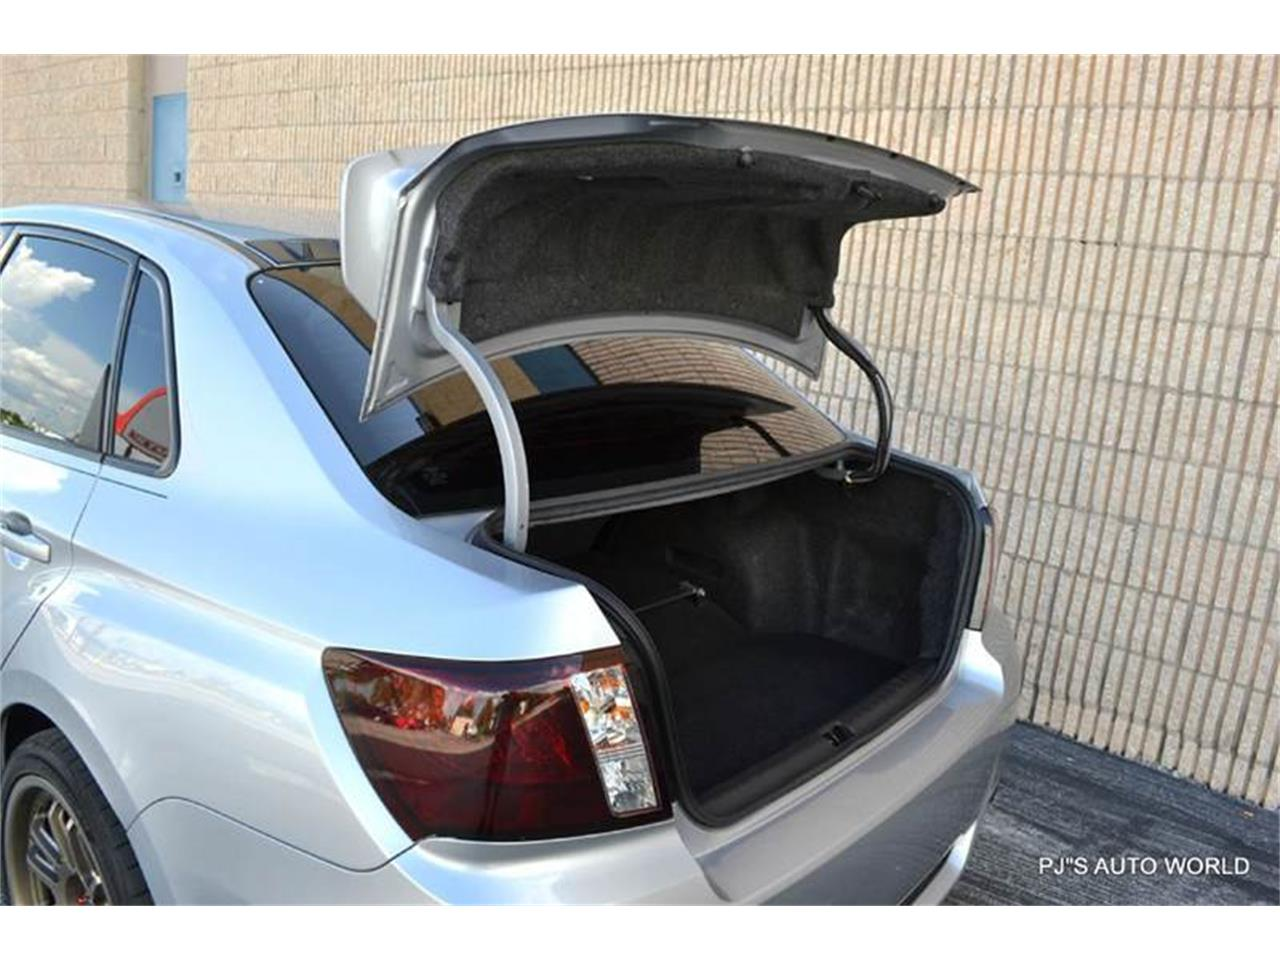 Large Picture of '13 Subaru Impreza located in Florida - $19,900.00 Offered by PJ's Auto World - J6WM